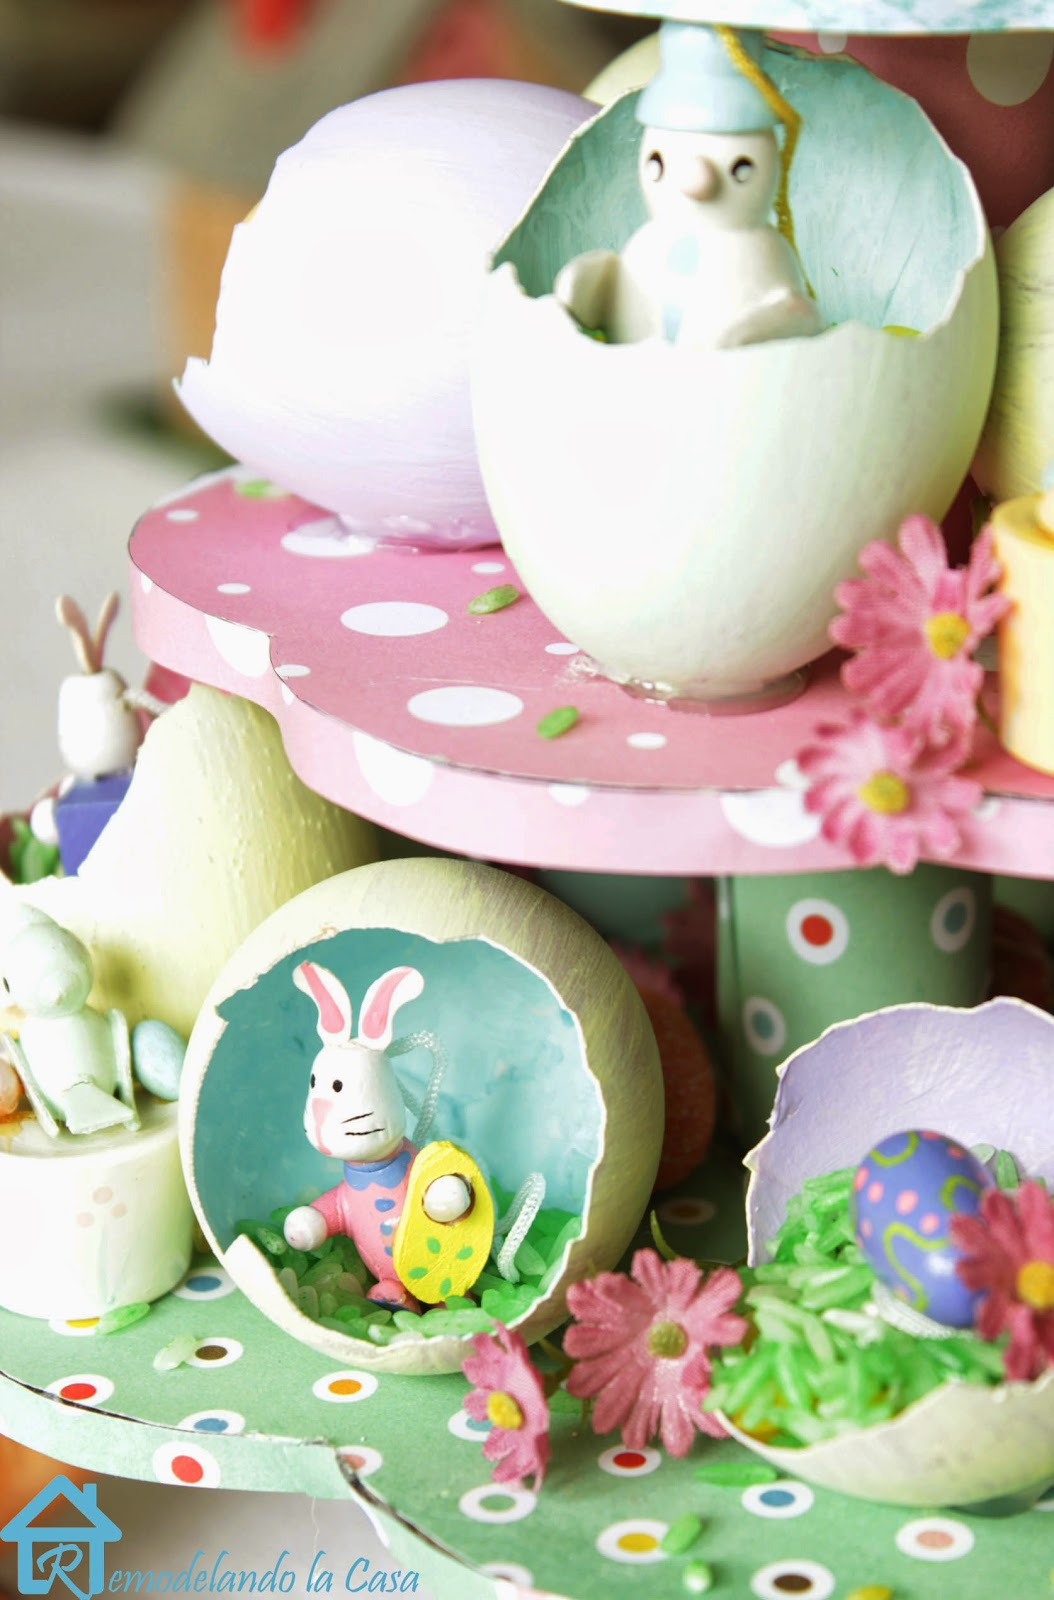 small rabbit, bird and flowers inside egg shells for Easter egg tree centerpiece